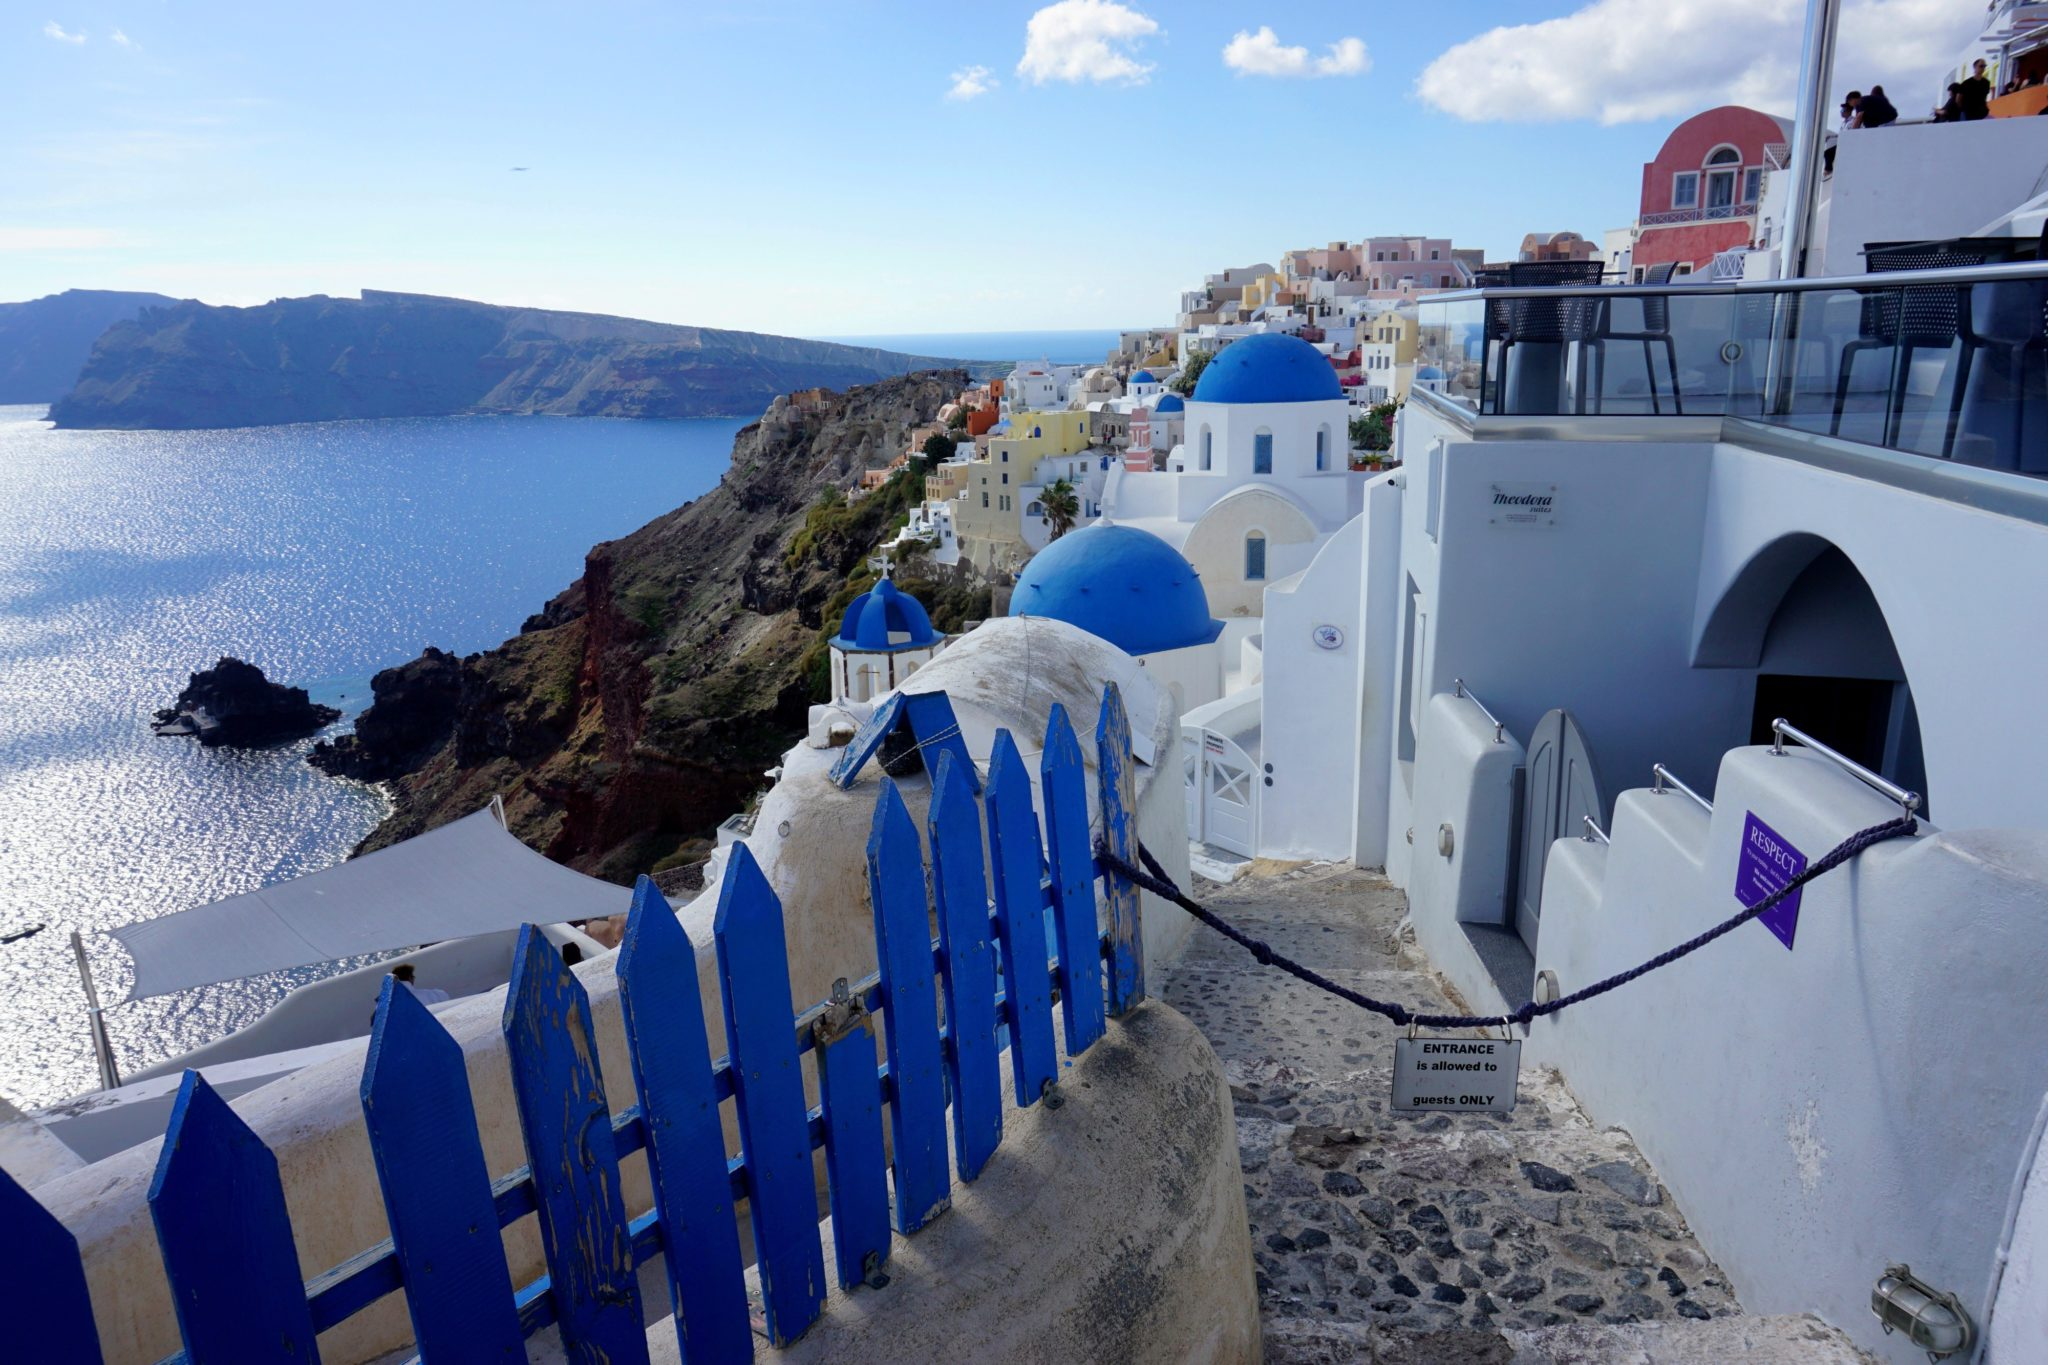 The iconic blue domed churches of Oia.